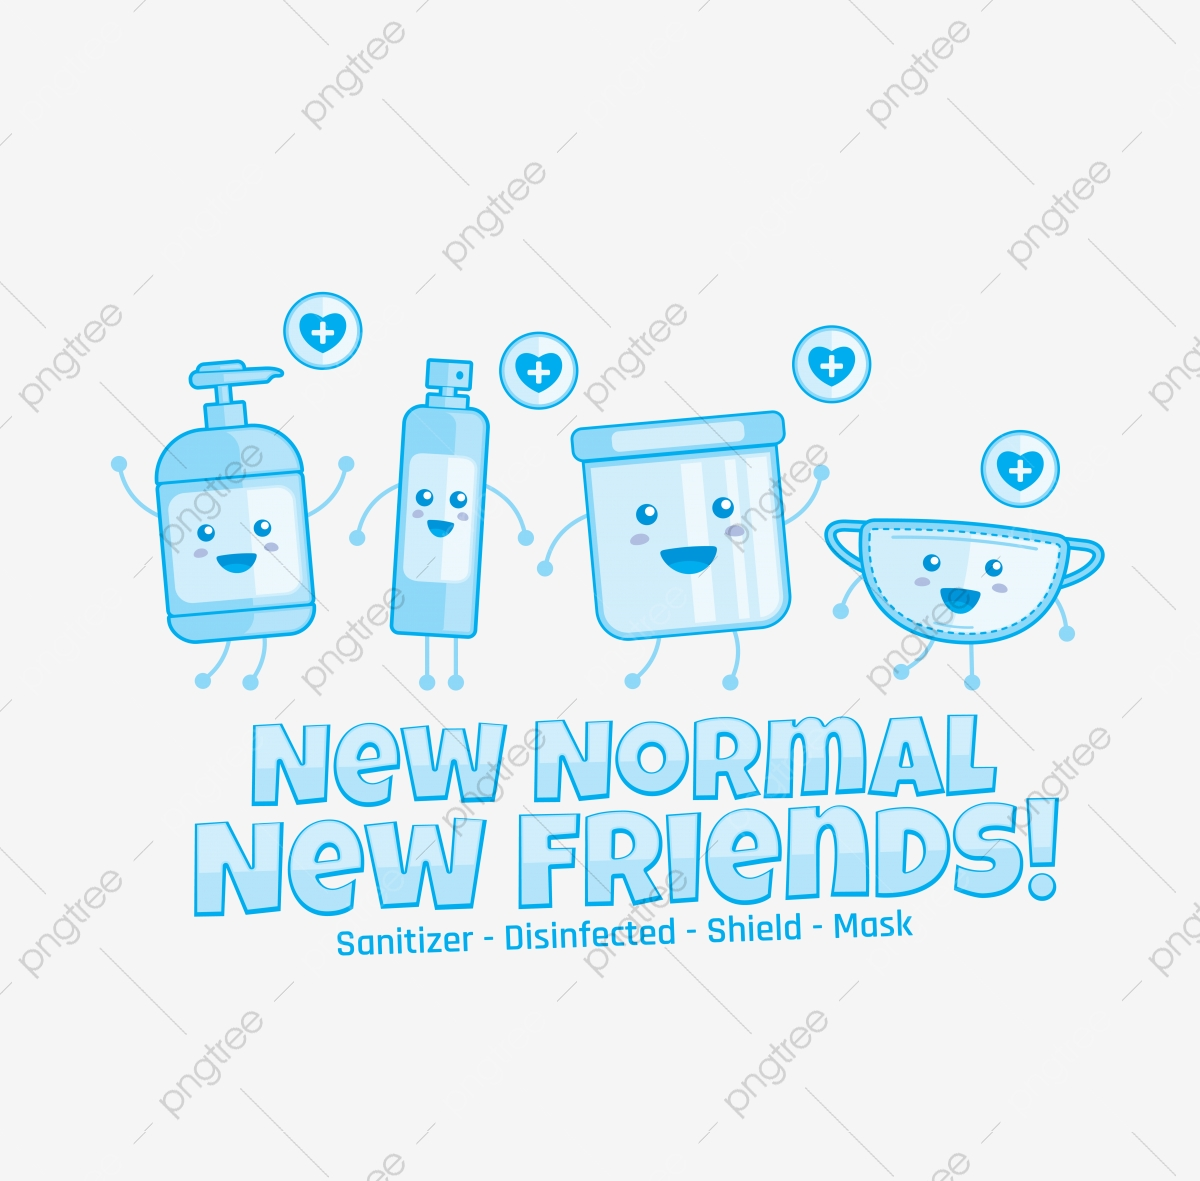 New Healthy Kit New Normal Kit Healthy Kit Png And Vector With Transparent Background For Free Download